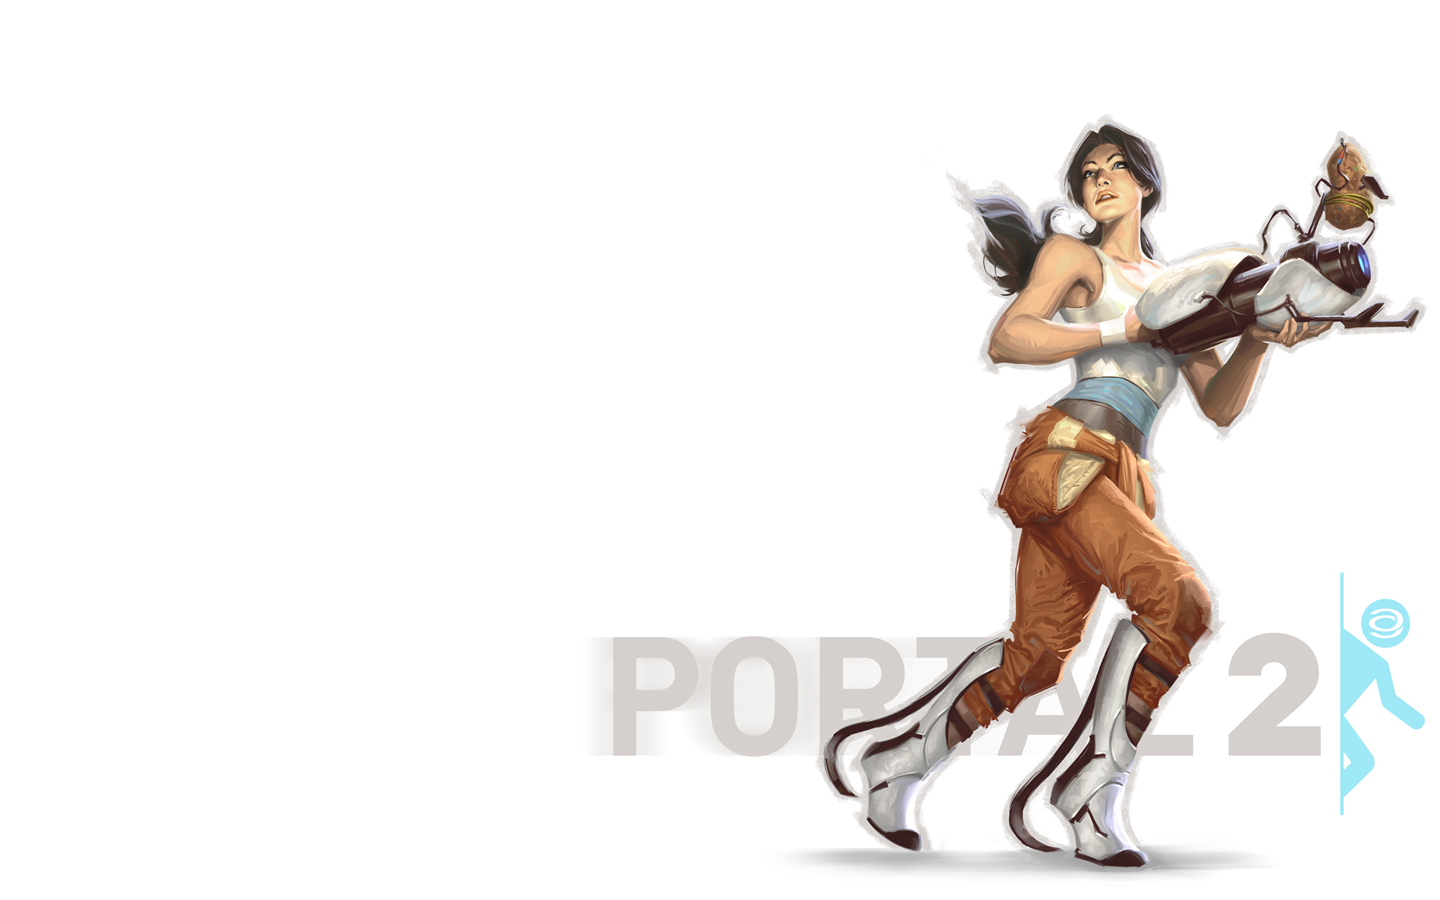 portal 2 HD Wallpaper